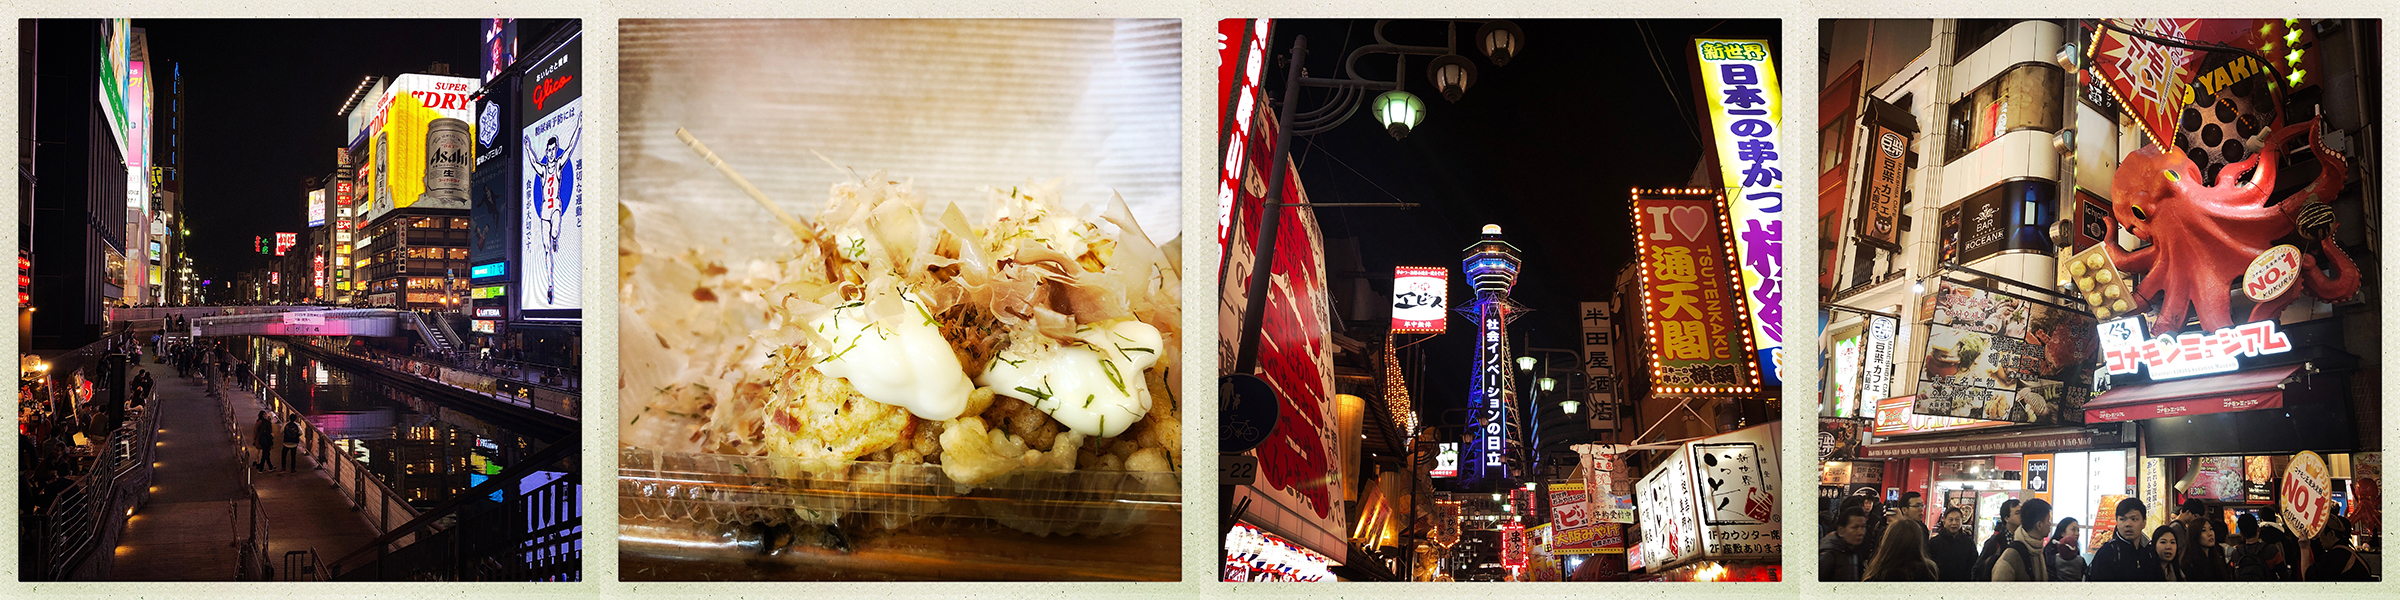 osaka_dotonbori_takoyaki_shinsekai_nightlife_japan.JPG